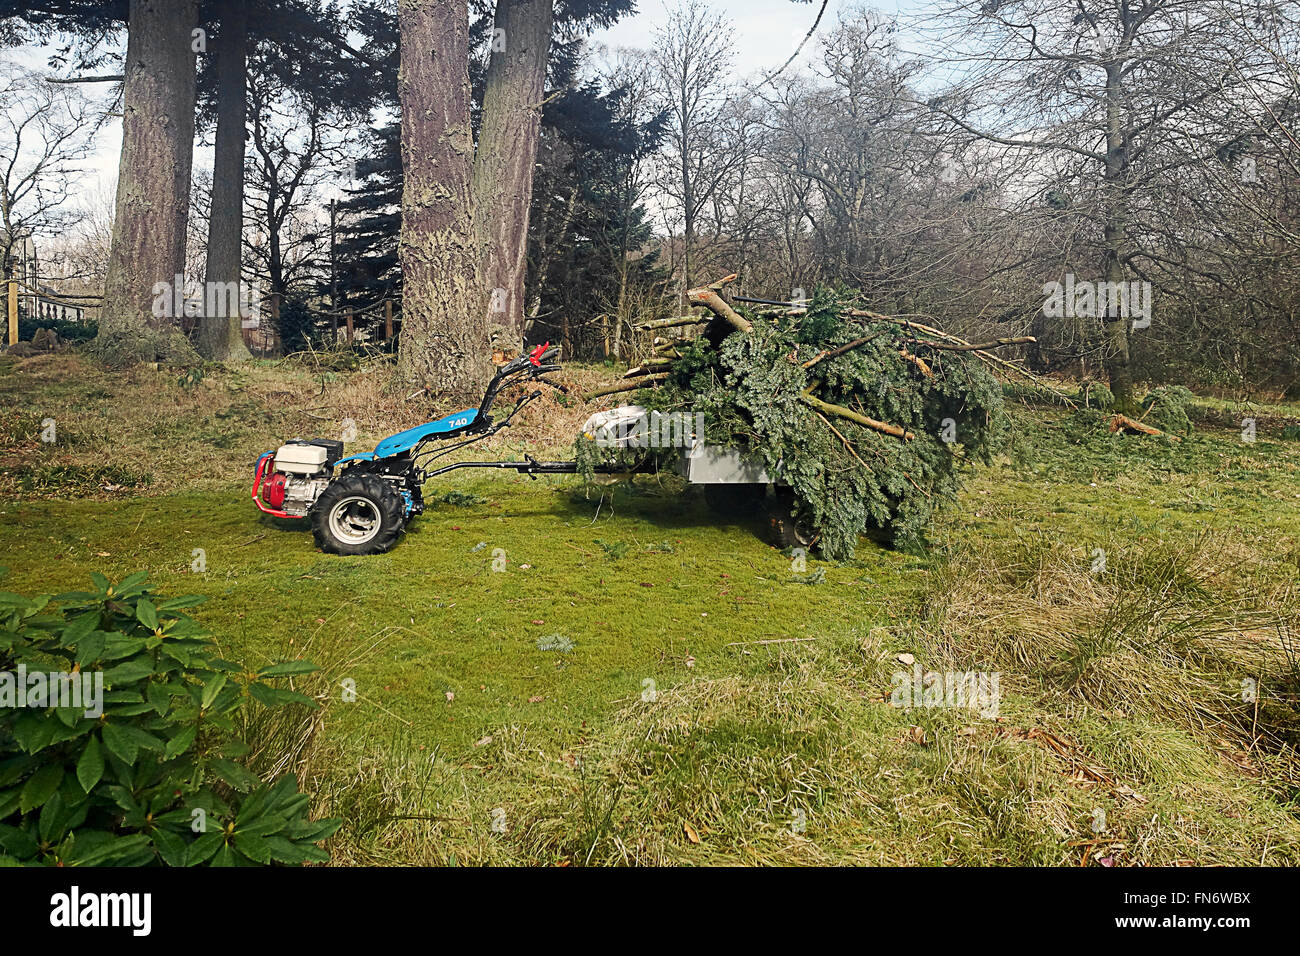 Cleaning up after high wind damage.on small estate. - Stock Image